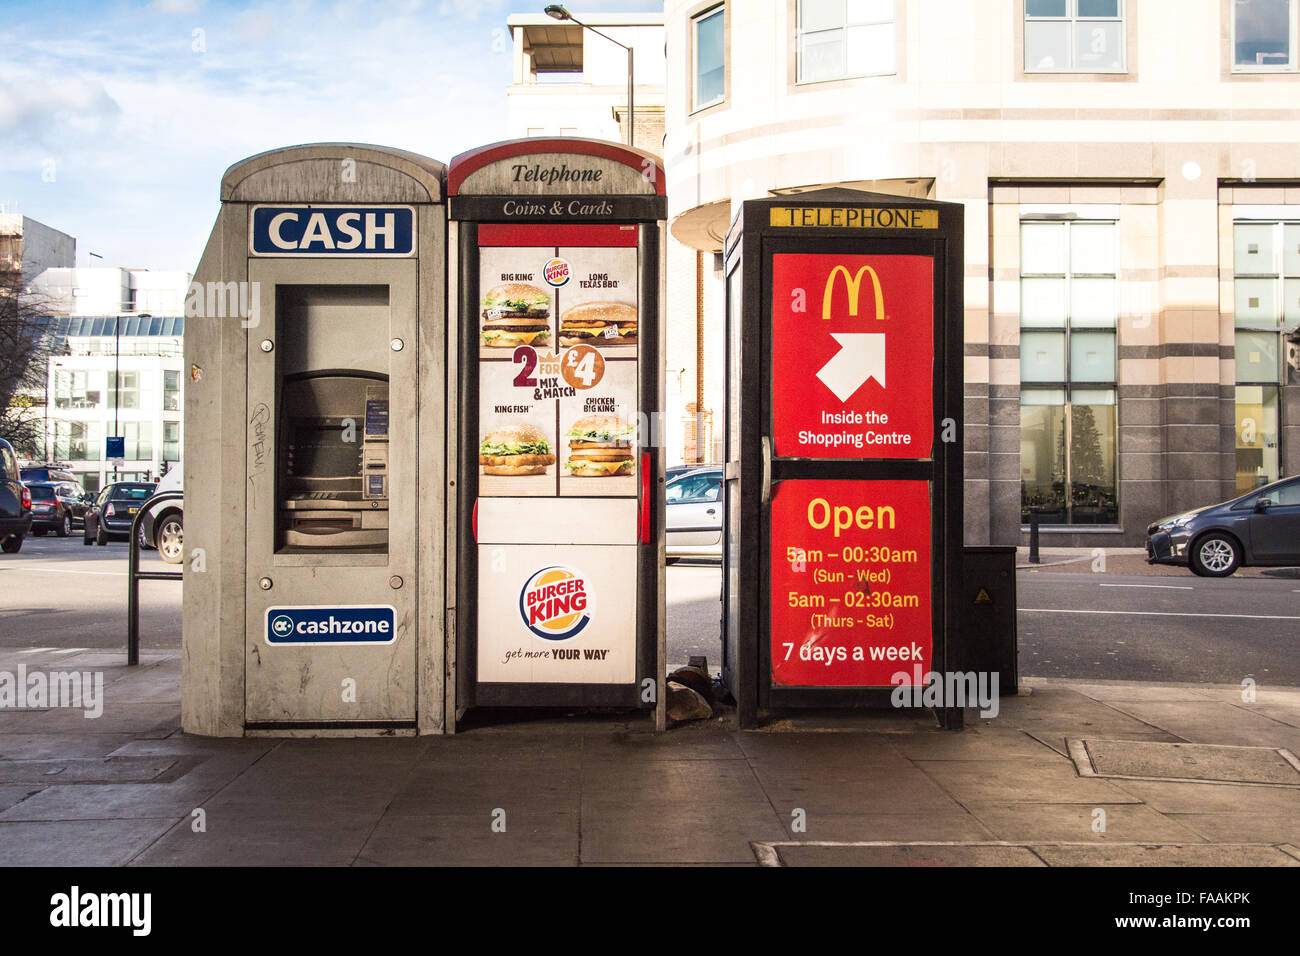 Neglected telephone kiosks and cash machine in London street - Stock Image